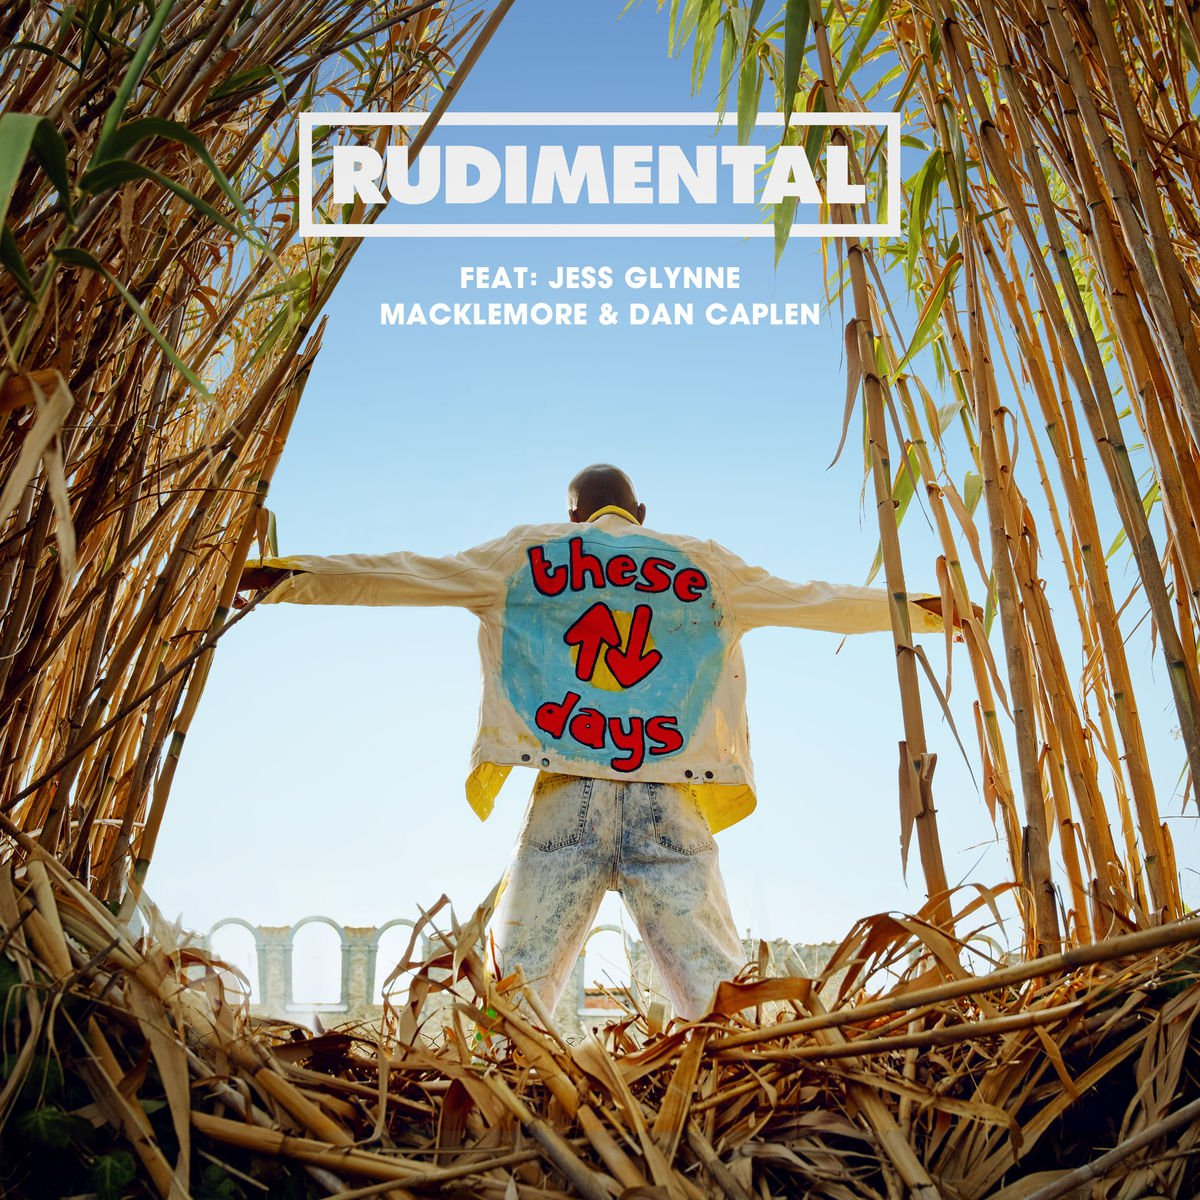 Rudimental-ft-Jess-Glynne-Macklemore-Dan-Caplen-These-Days.jpg